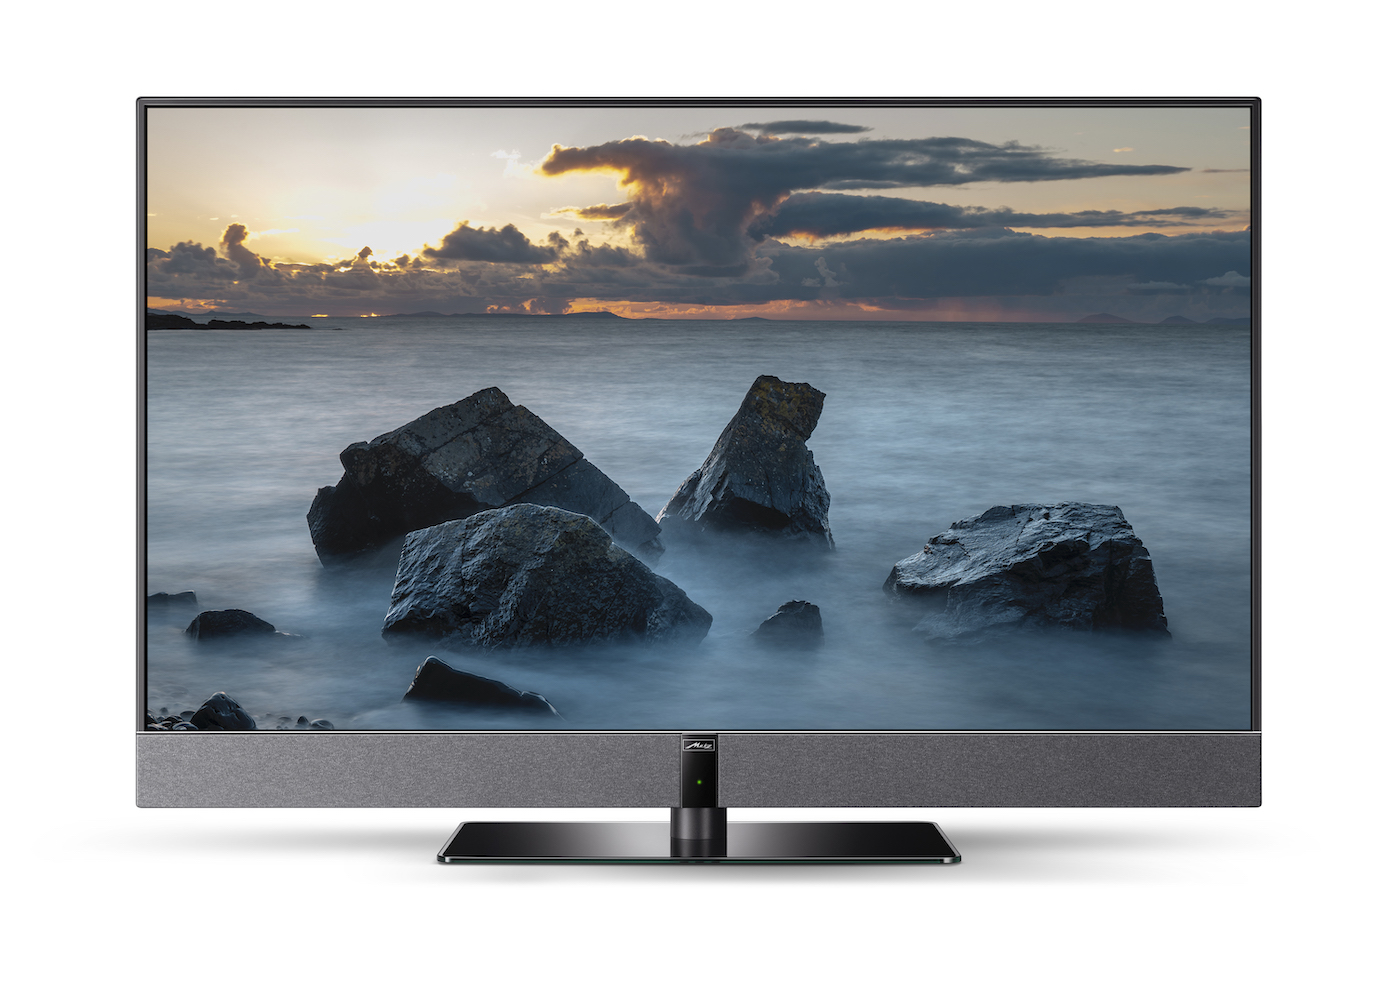 Neuer Metz Calea Direct LED UHD TV